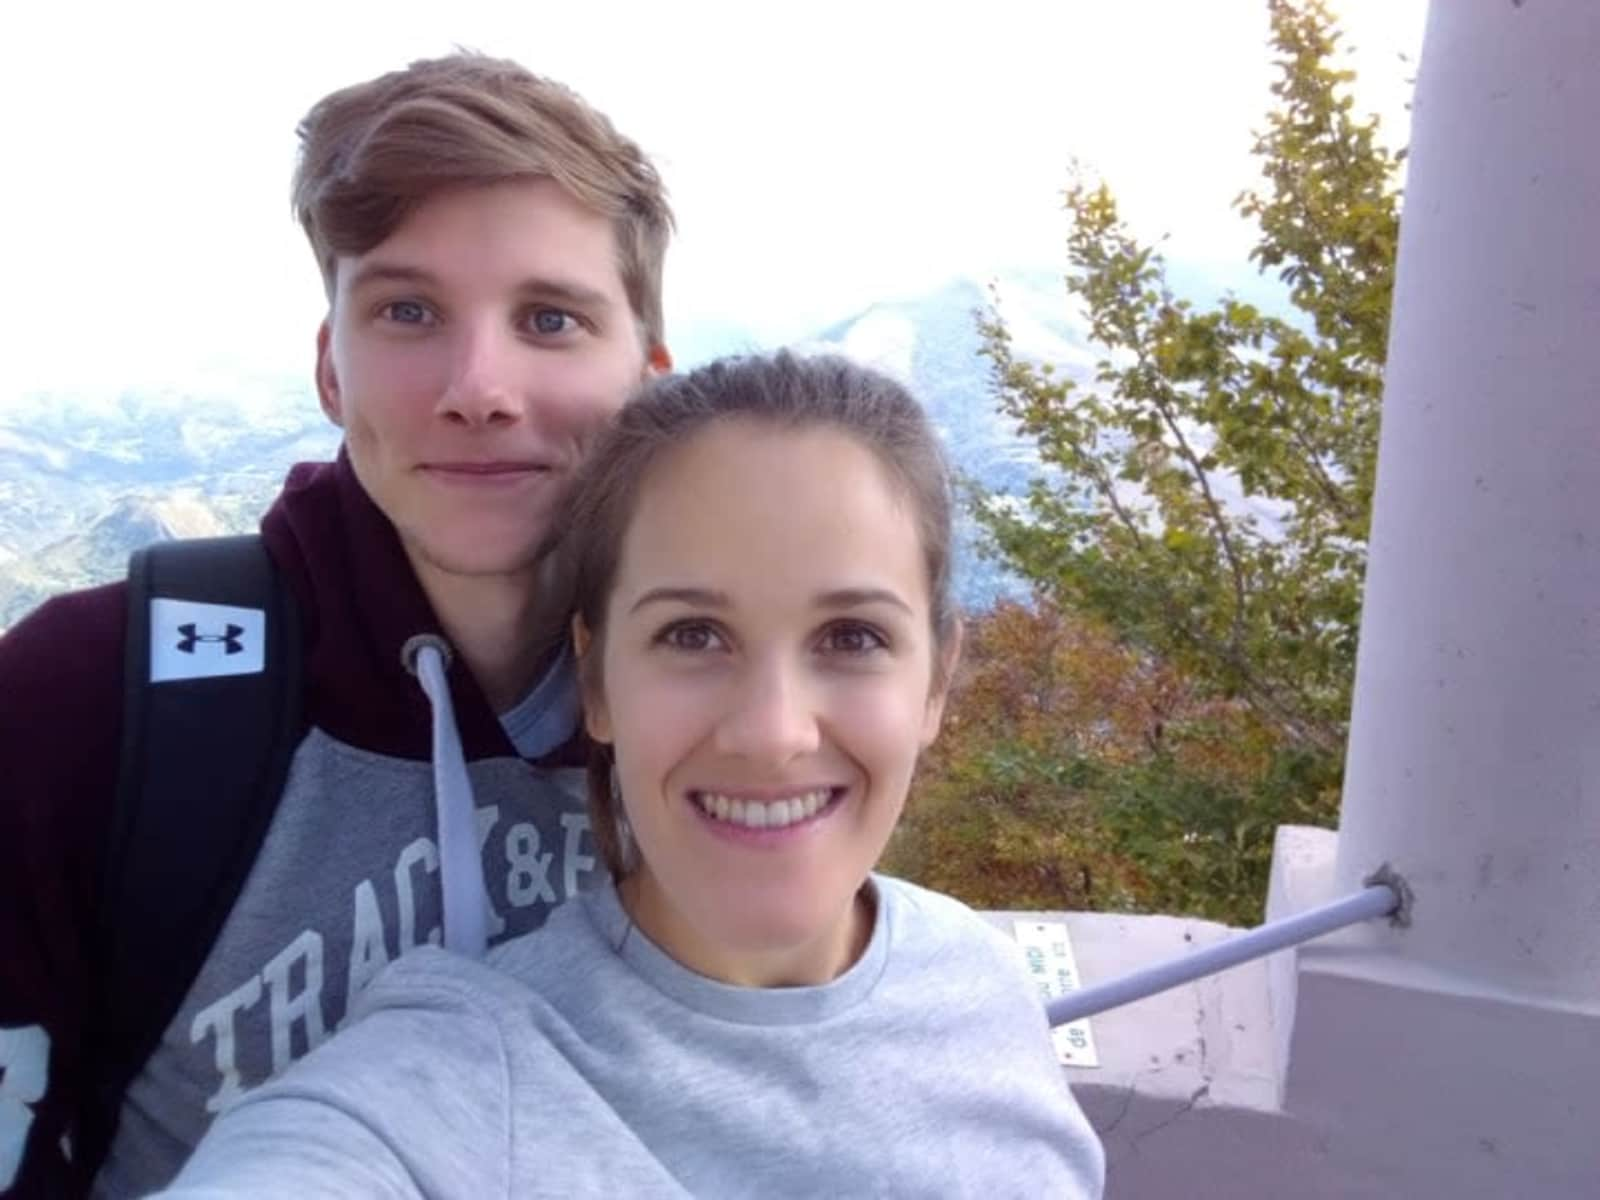 Tiffany & Florent from Agen, France